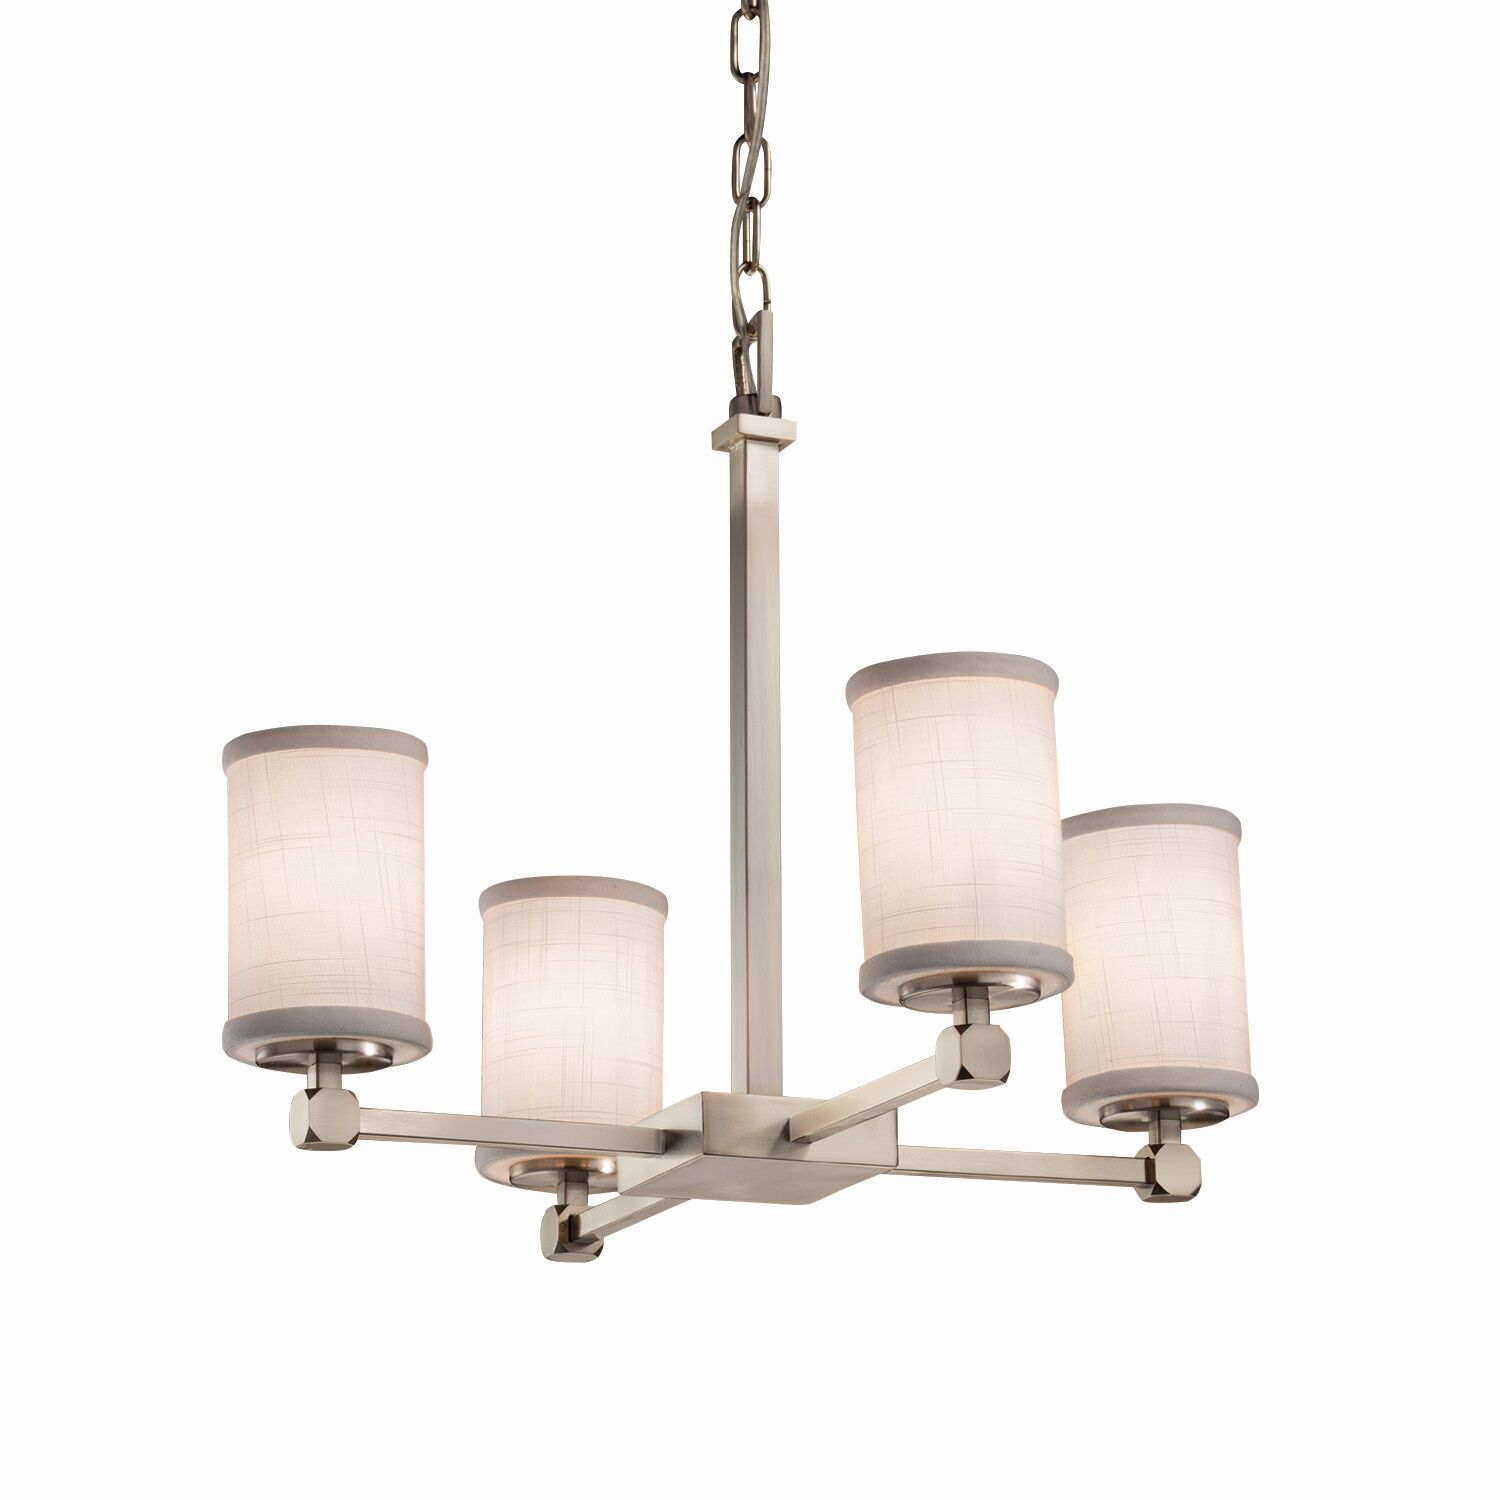 Red Hook 4 Light Cylinder w/ Flat Rim Shaded Chandelier Finish: Brushed Nickel, Shade Color: White